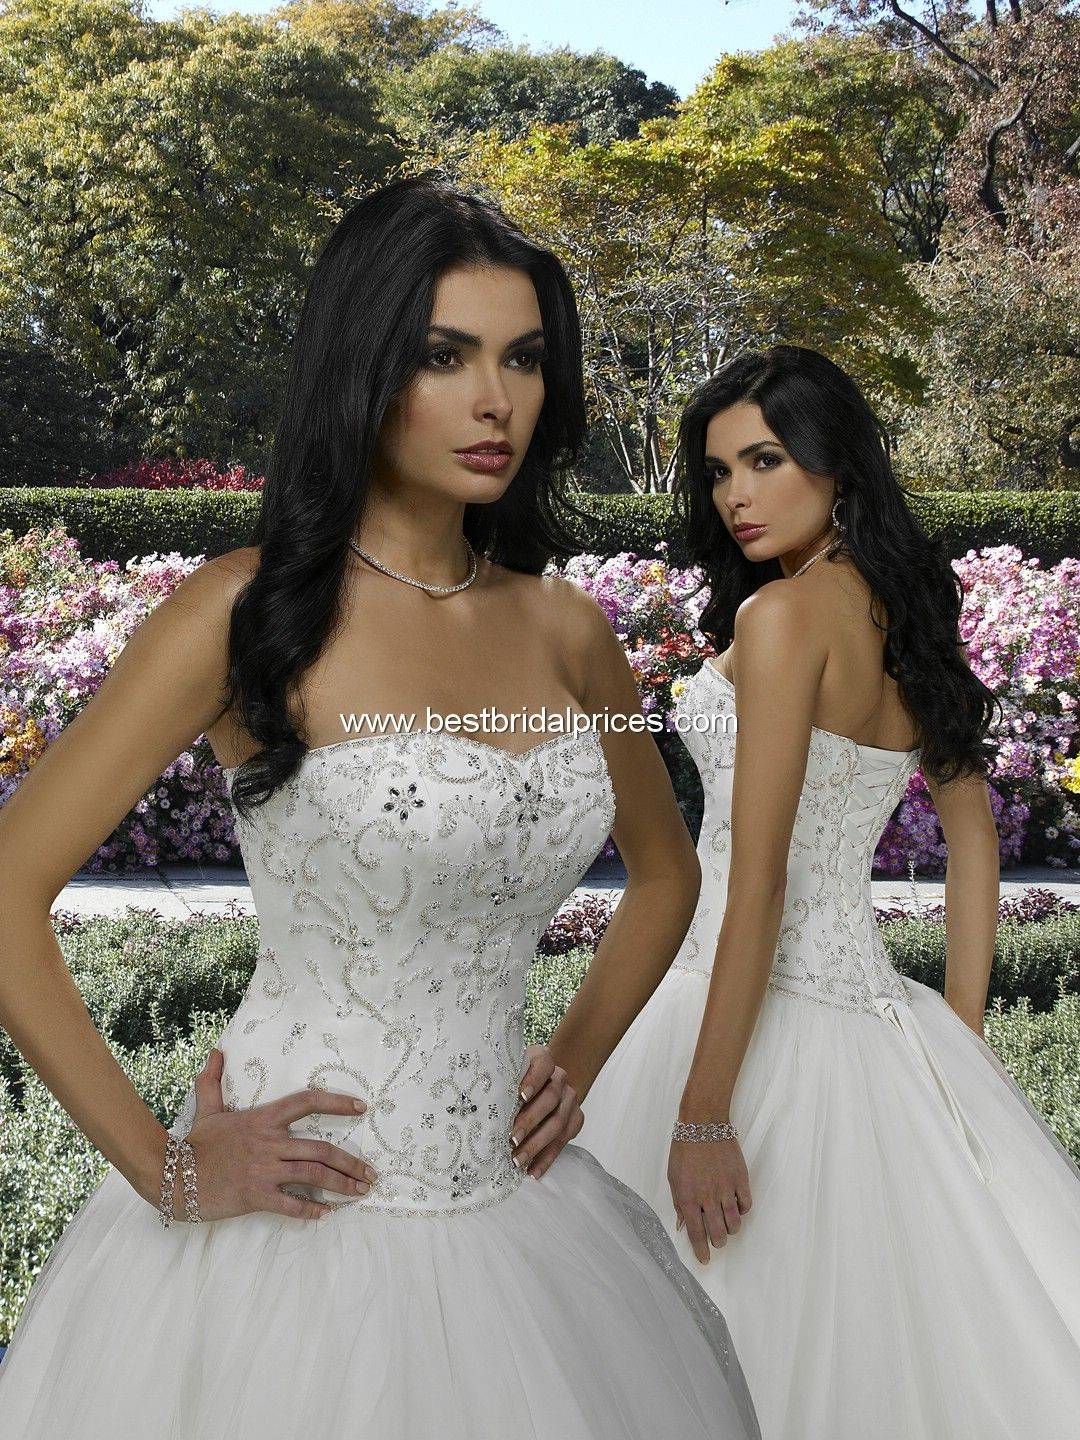 Fantasy by forever yours wedding dresses style 410225 wedding fantasy by forever yours wedding dresses style 410225 ombrellifo Image collections